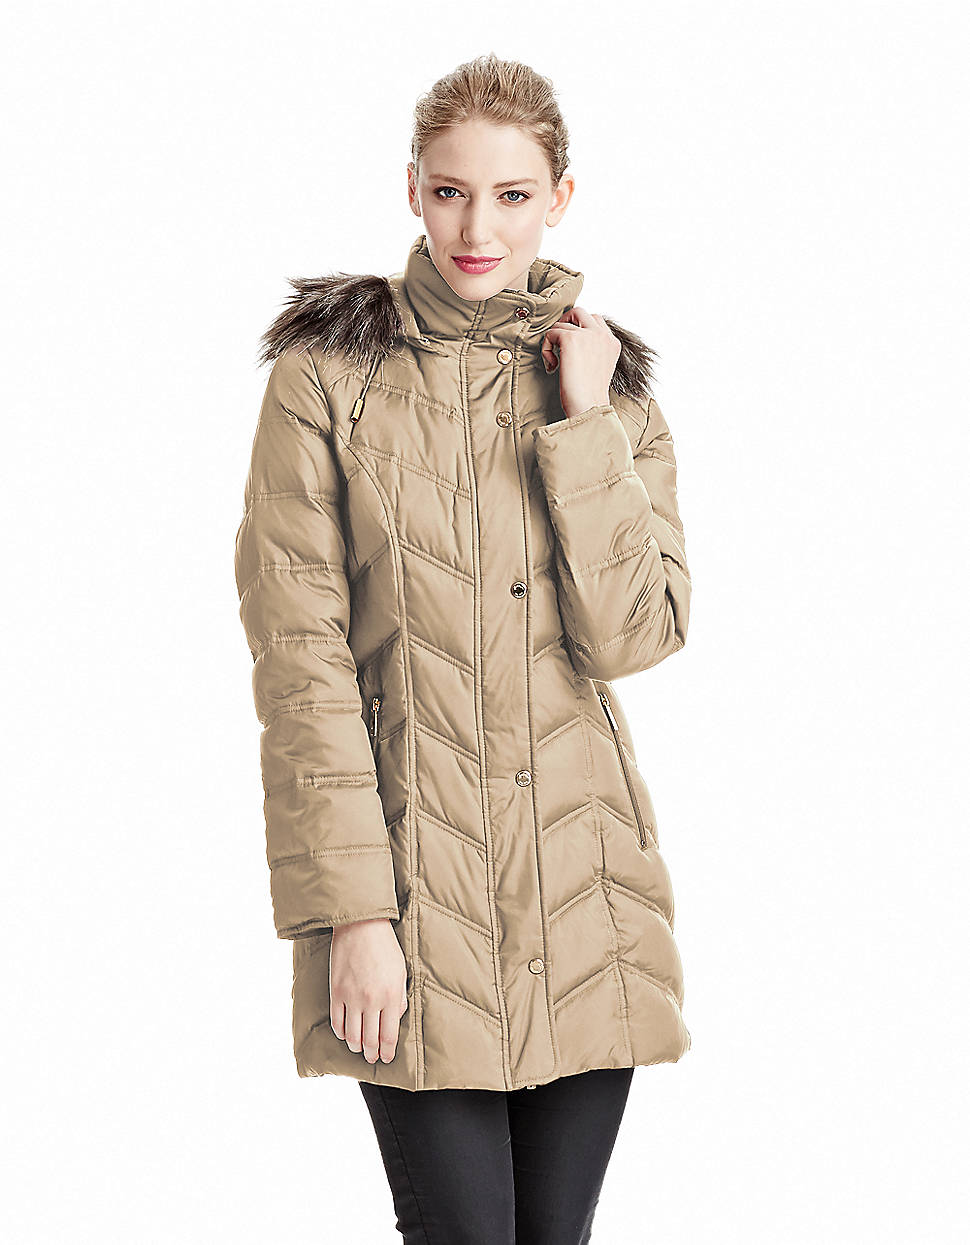 Kenneth cole Chevron Quilted Coat in Brown | Lyst : kenneth cole chevron quilted coat - Adamdwight.com